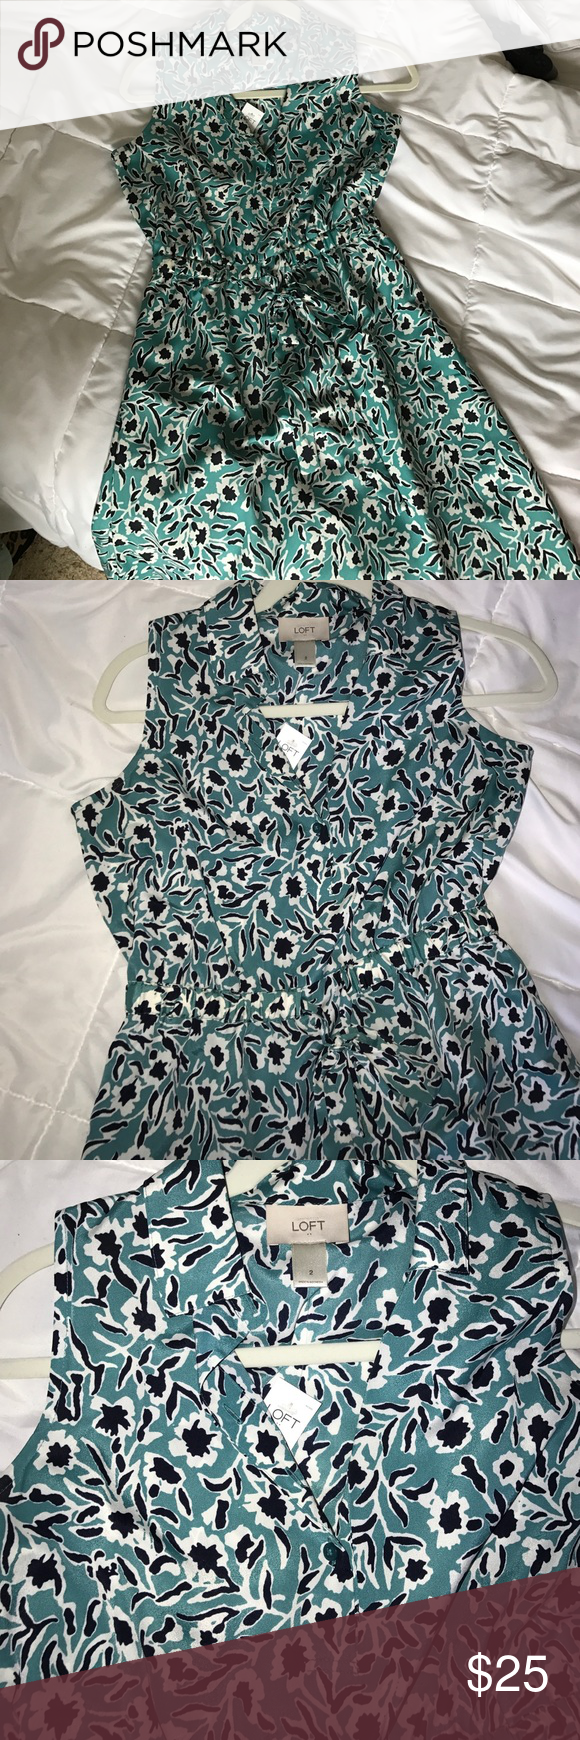 NWT- Ann taylor loft dress Super cute - cinches in the middle with a tie LOFT Dresses Mini